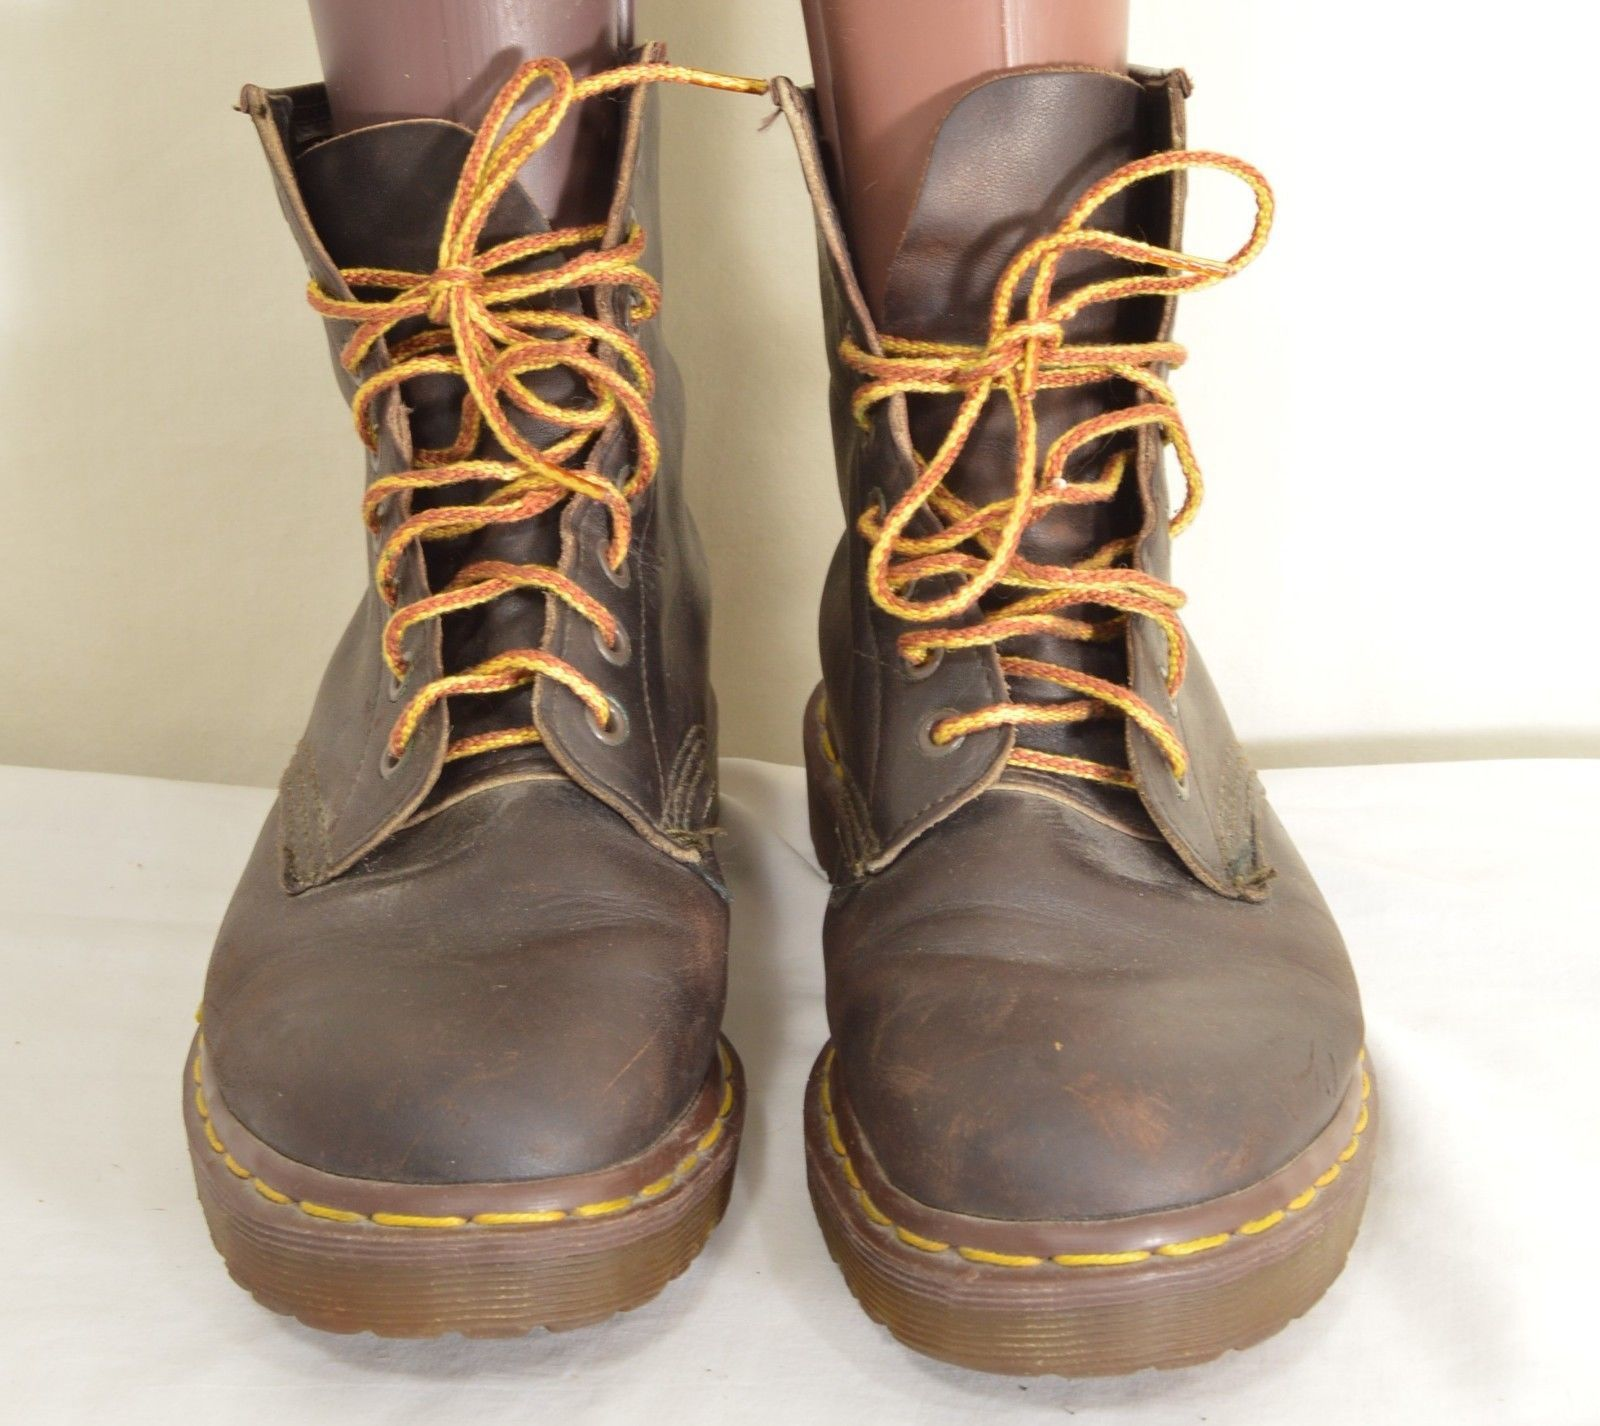 Dr Martens boots ankle UK 6 US 8 EU 39 dark brown lace up AirWair 8 eye